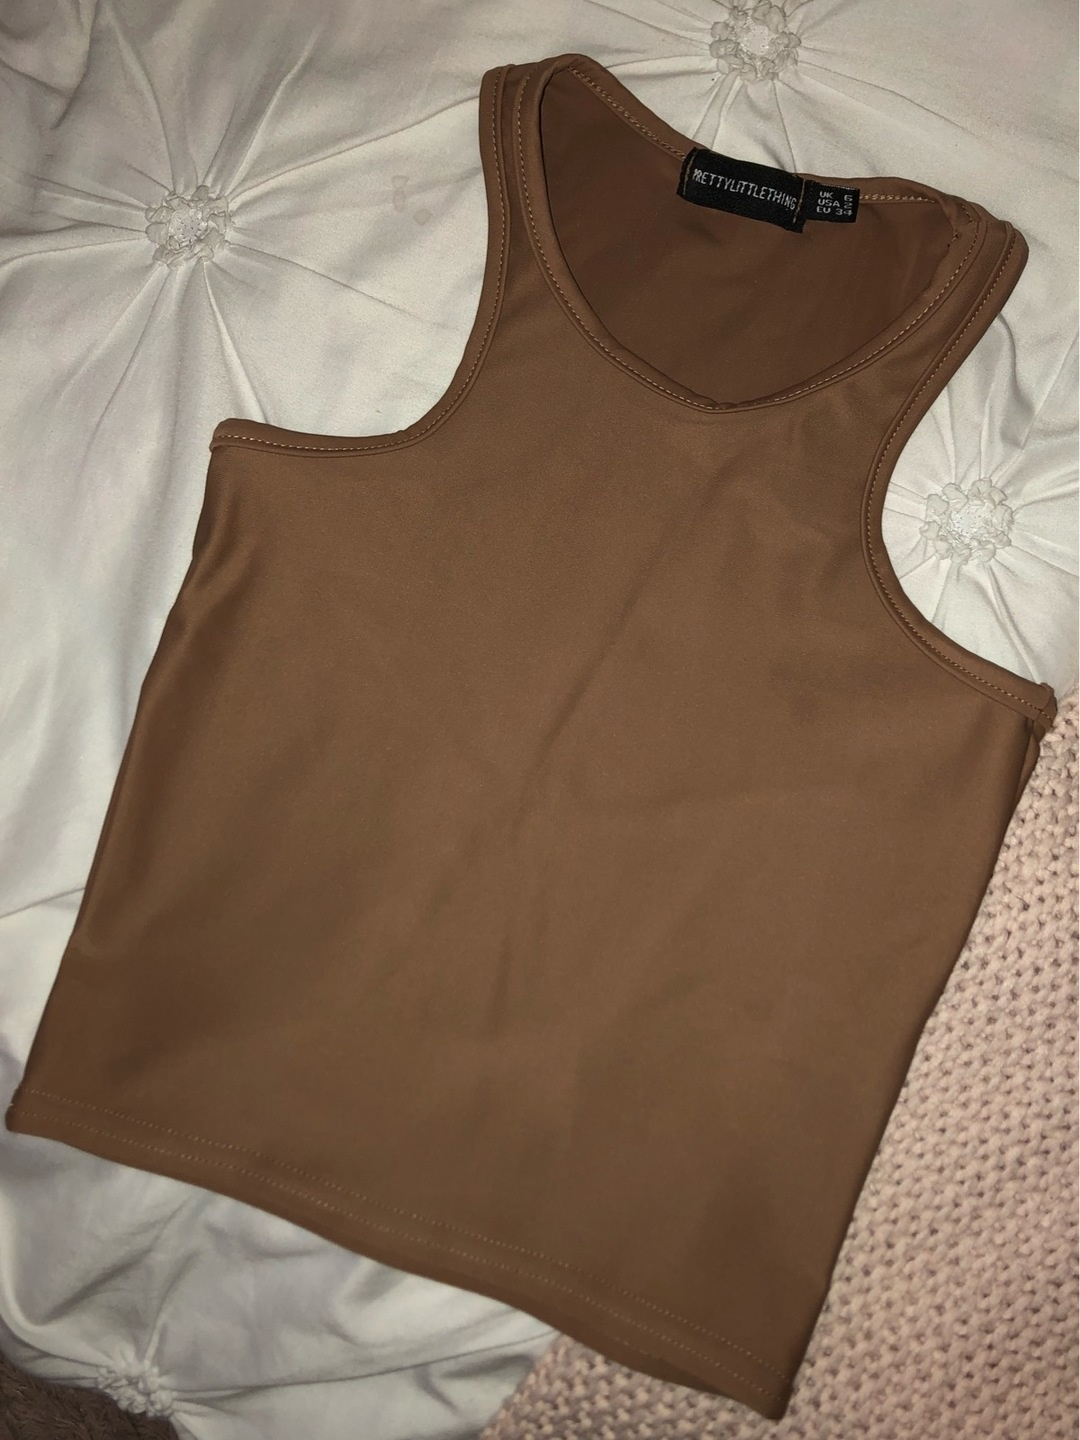 Women's tops & t-shirts - PRETTYLITLLETHING photo 1